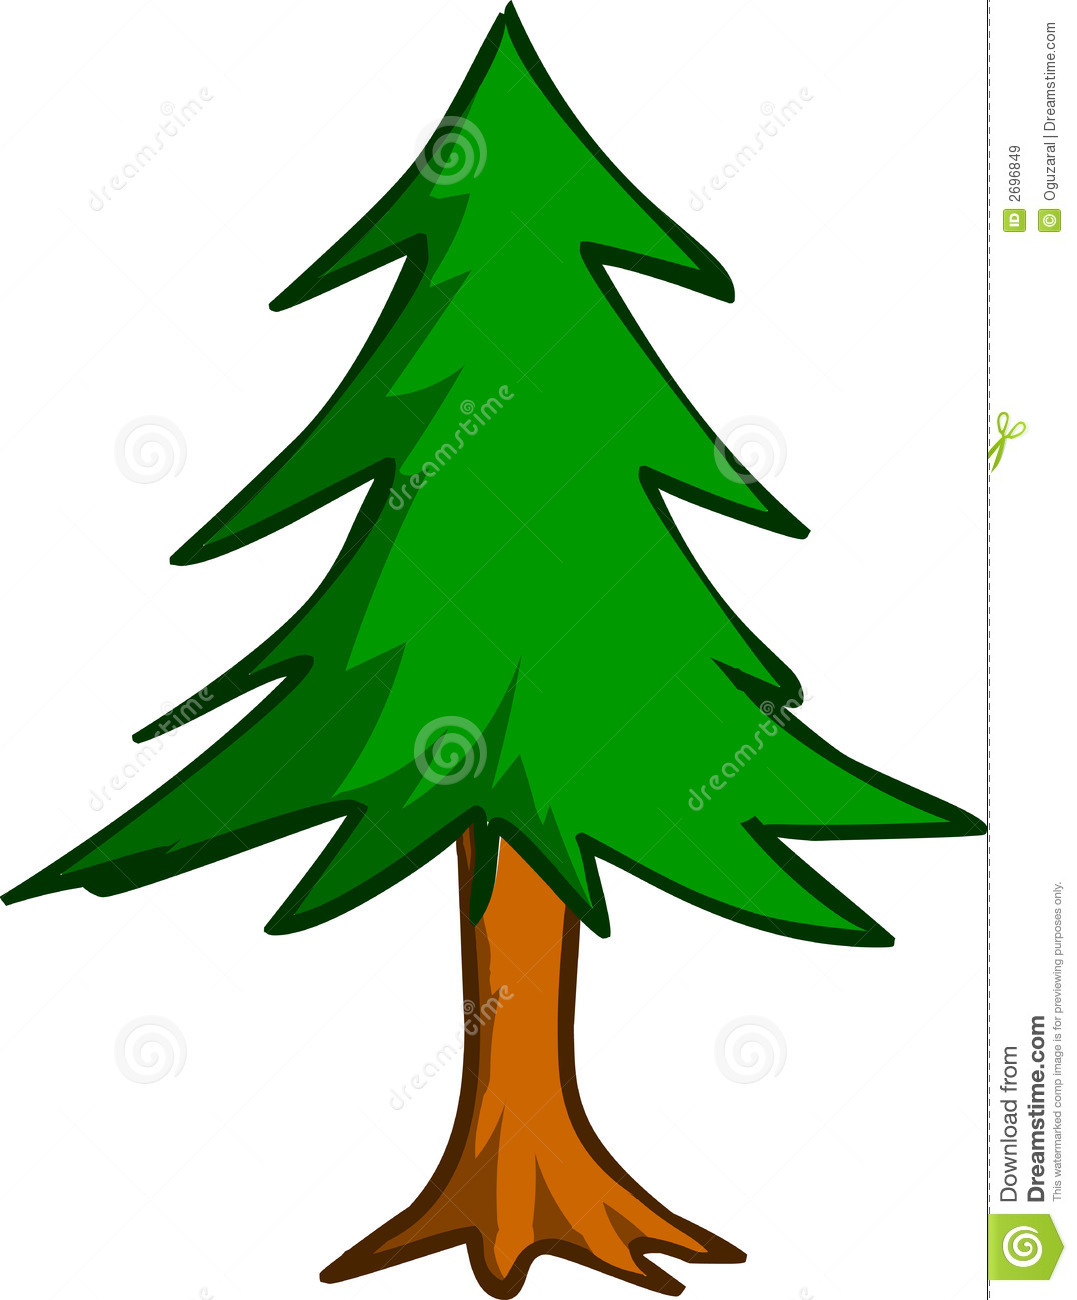 Butternut tree clipart jpg free Forest Trees Drawing | Free download best Forest Trees Drawing on ... jpg free